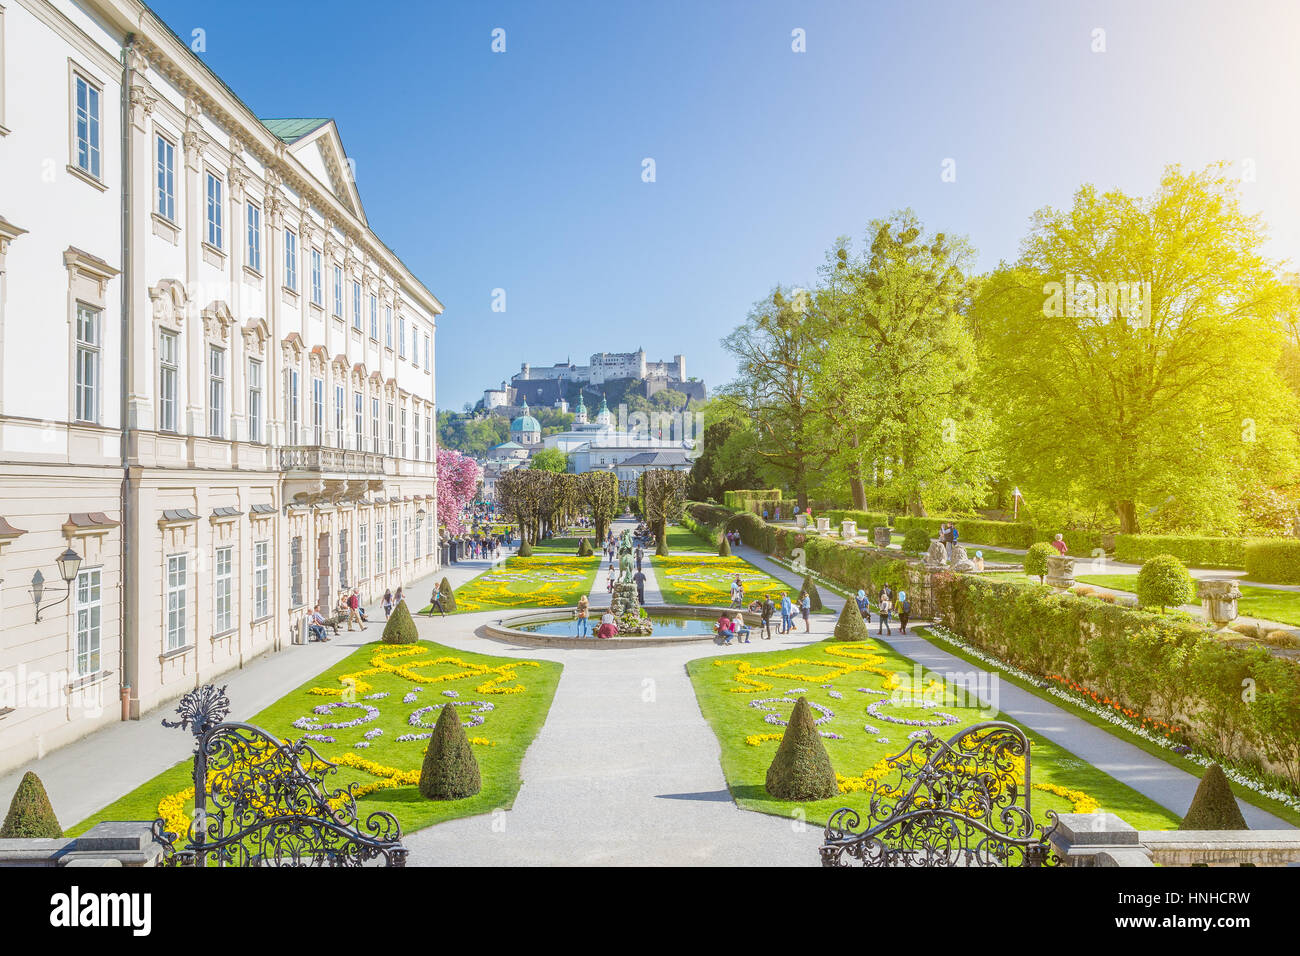 Classic view of Mirabell Gardens with famous Hohensalzburg Fortress in the background on a sunny day with blue sky - Stock Image